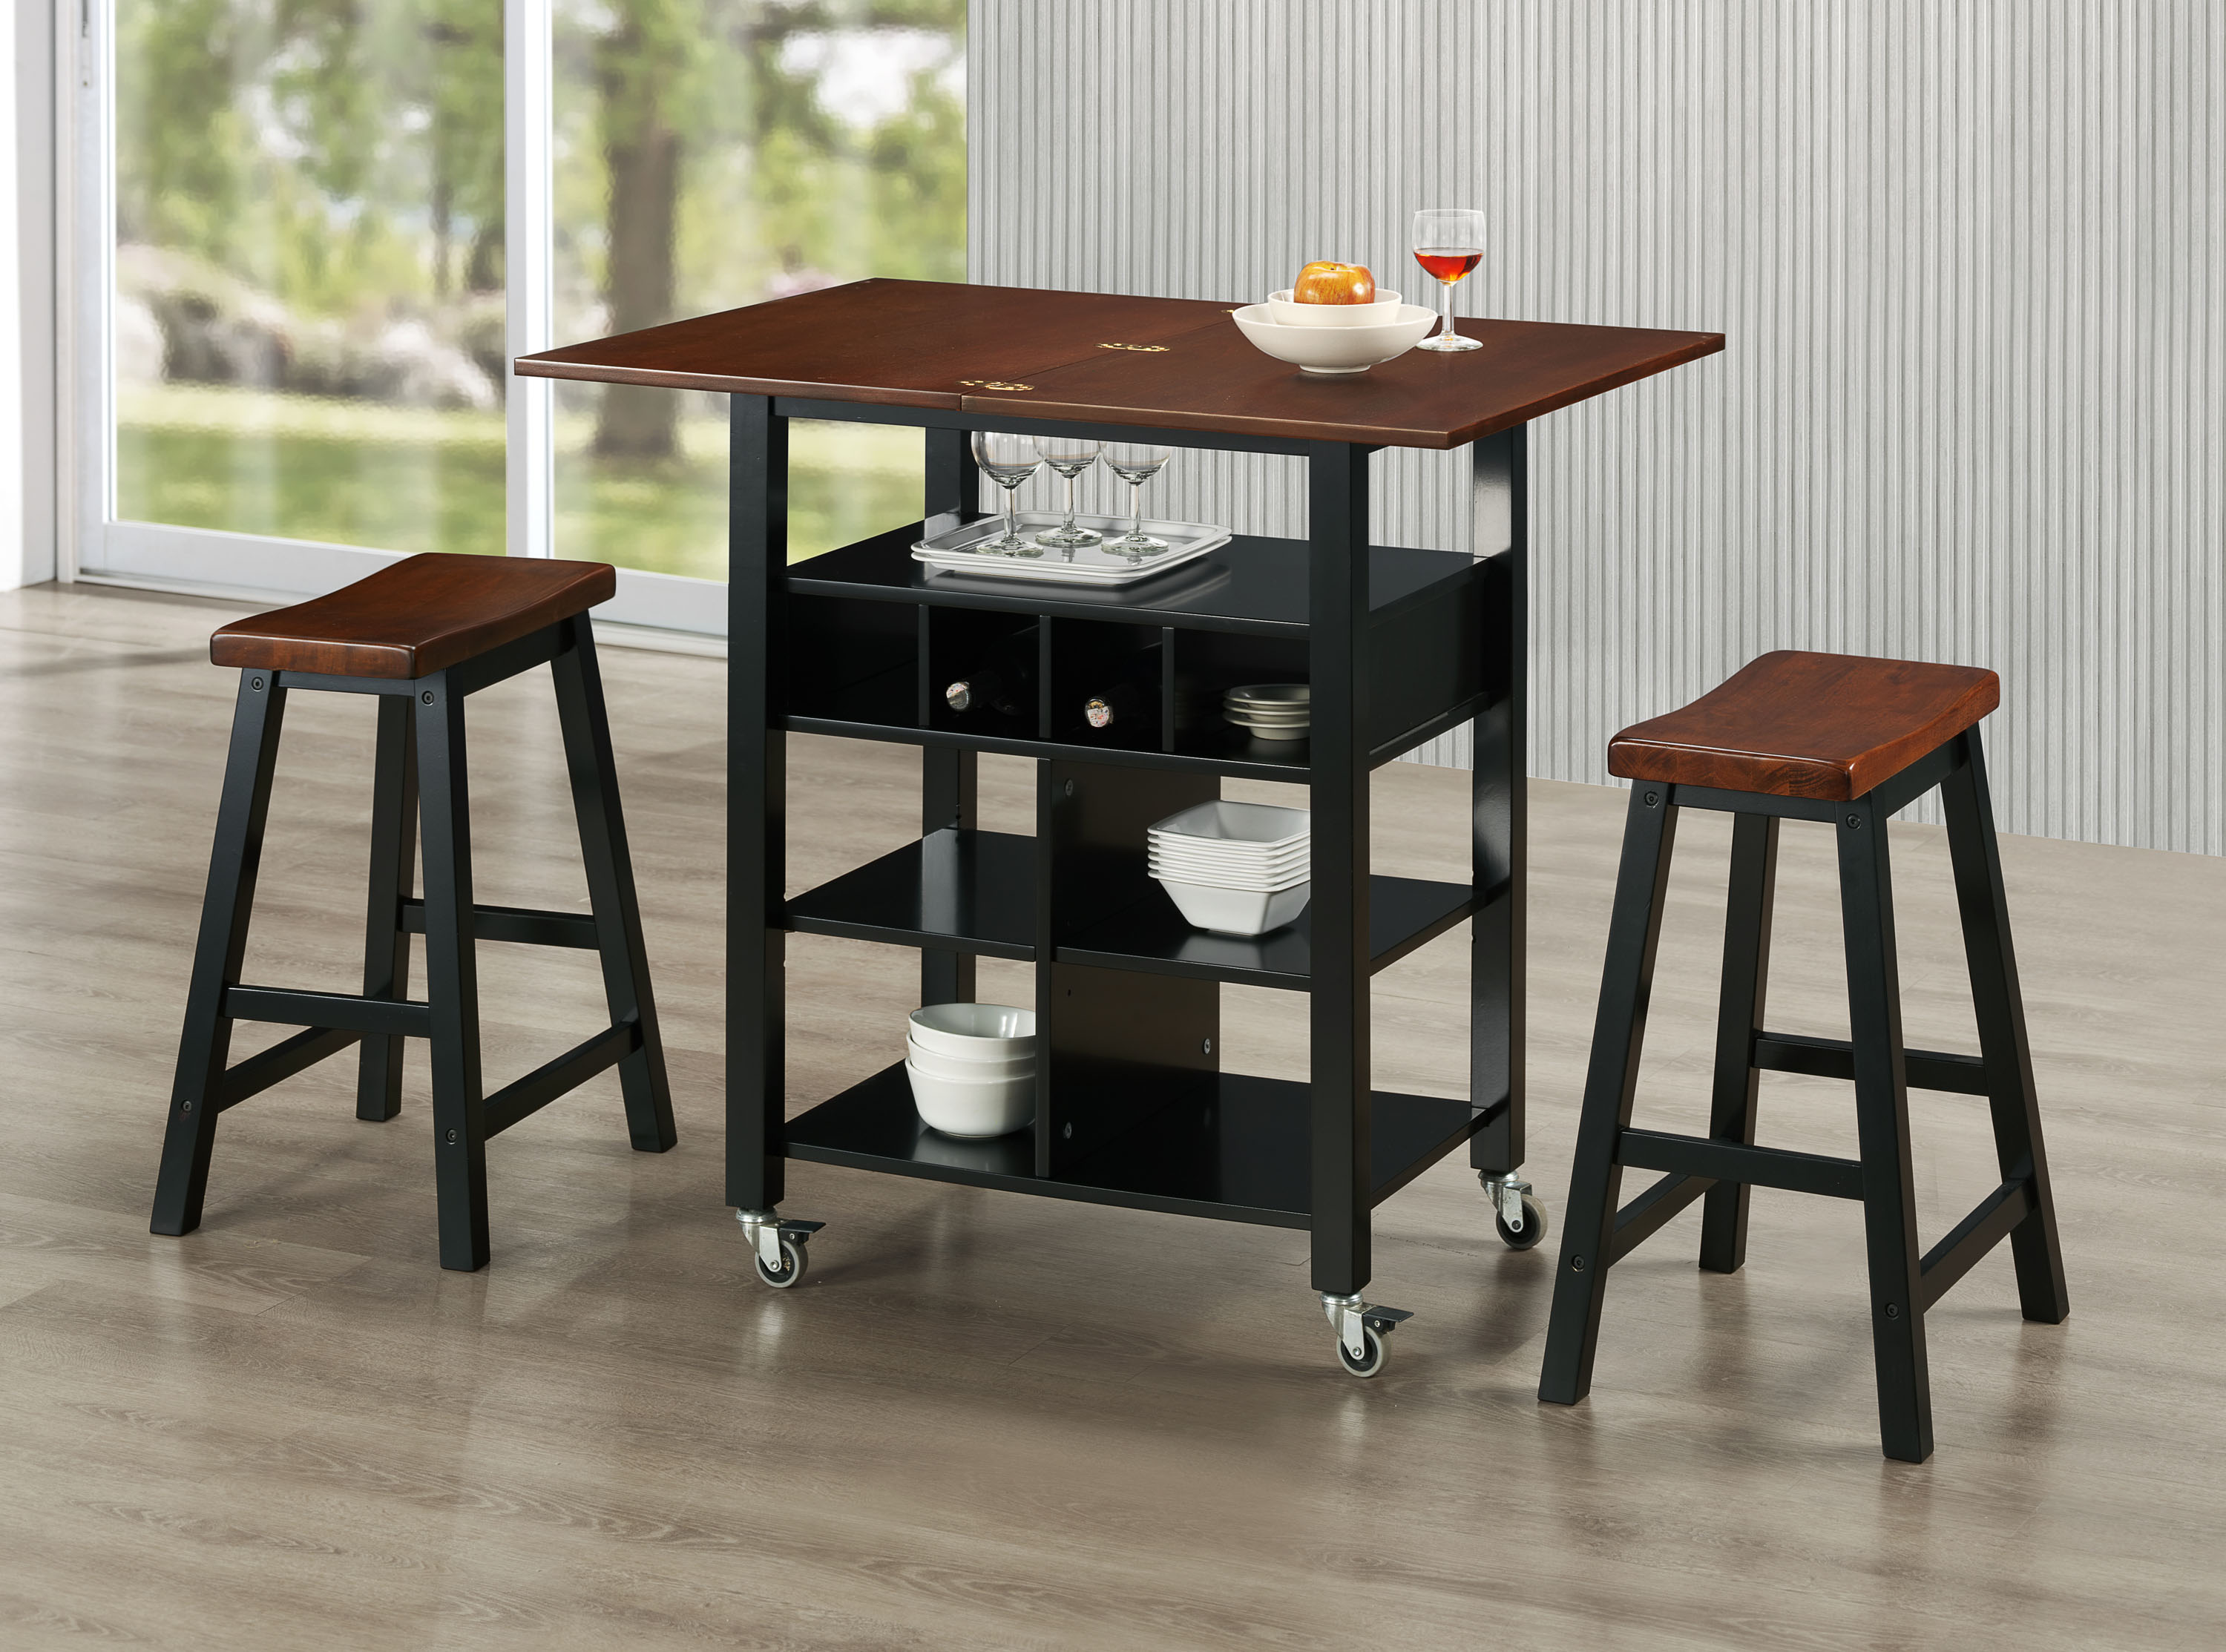 ideash new a island of stools kitchen islands small with com fabulous ideasi movingeastonwest sink design and excellent